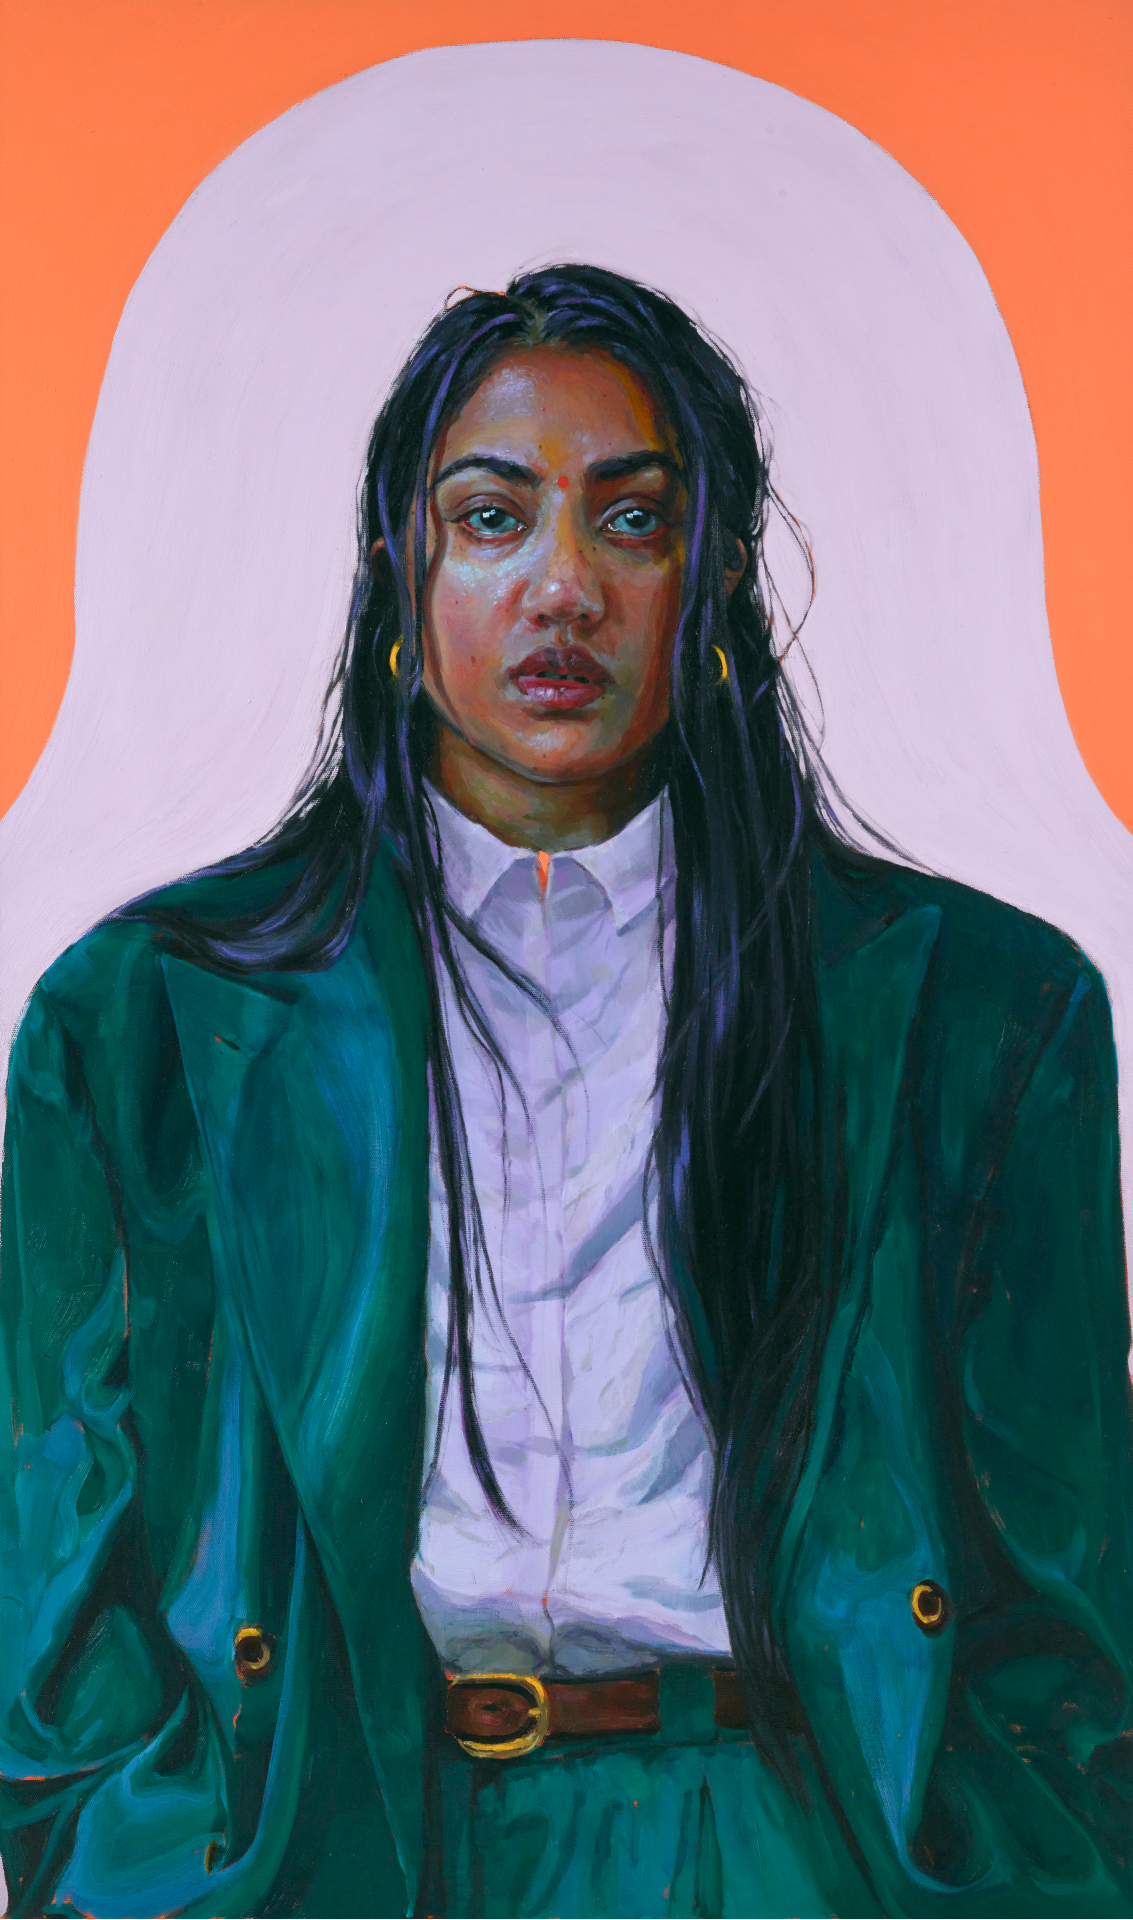 A self-portrait of Kirthna Selvaraj looking straight ahead and wearing an oversized green suit, with a white button-down